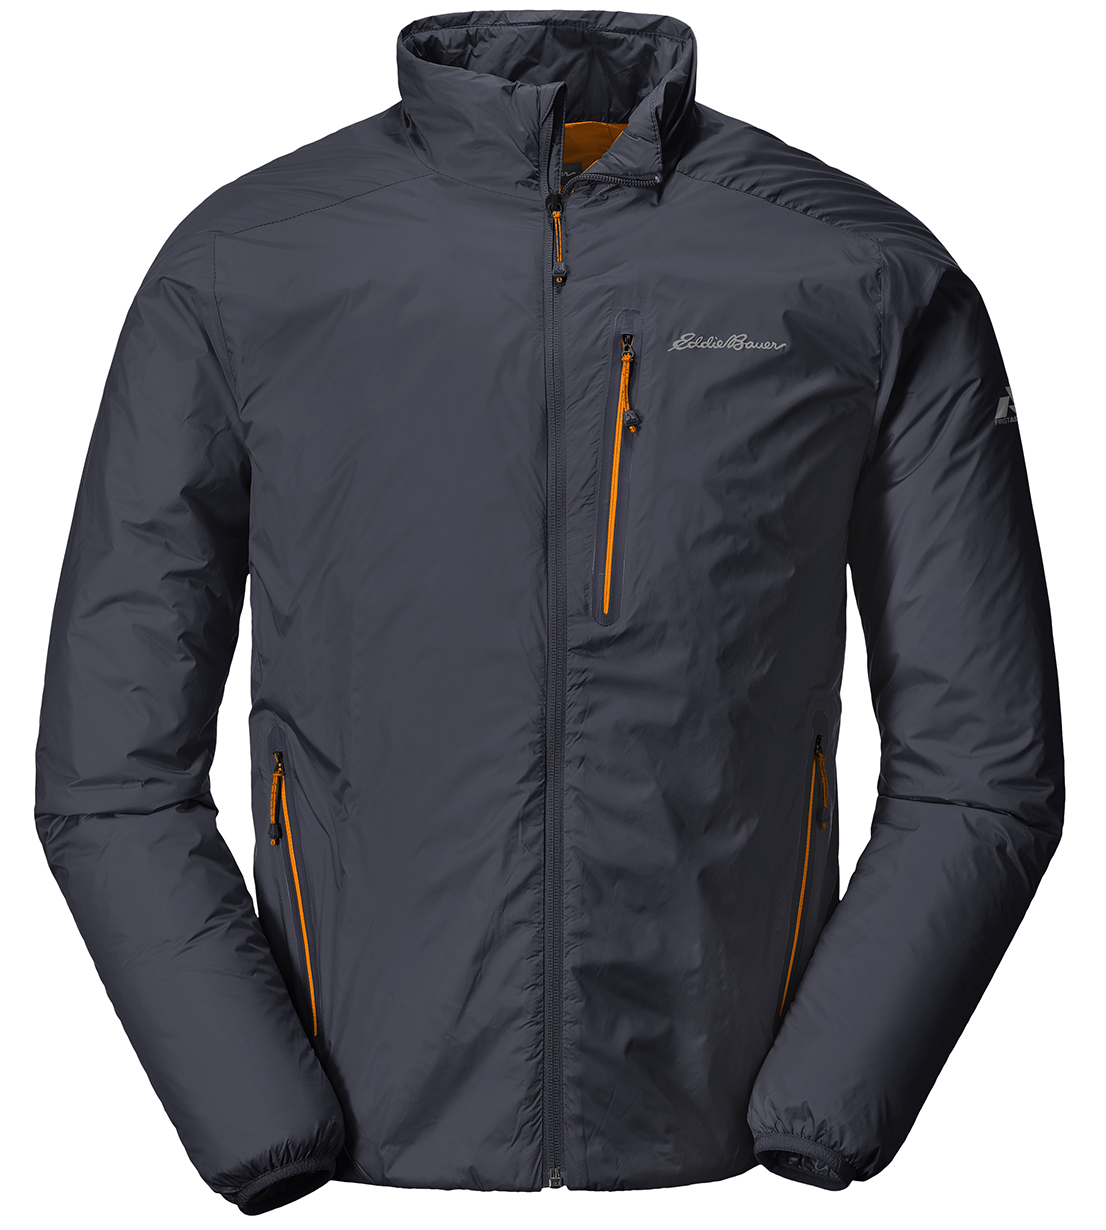 Eddie Bauer EverTherm jacket on Blister Gear Review